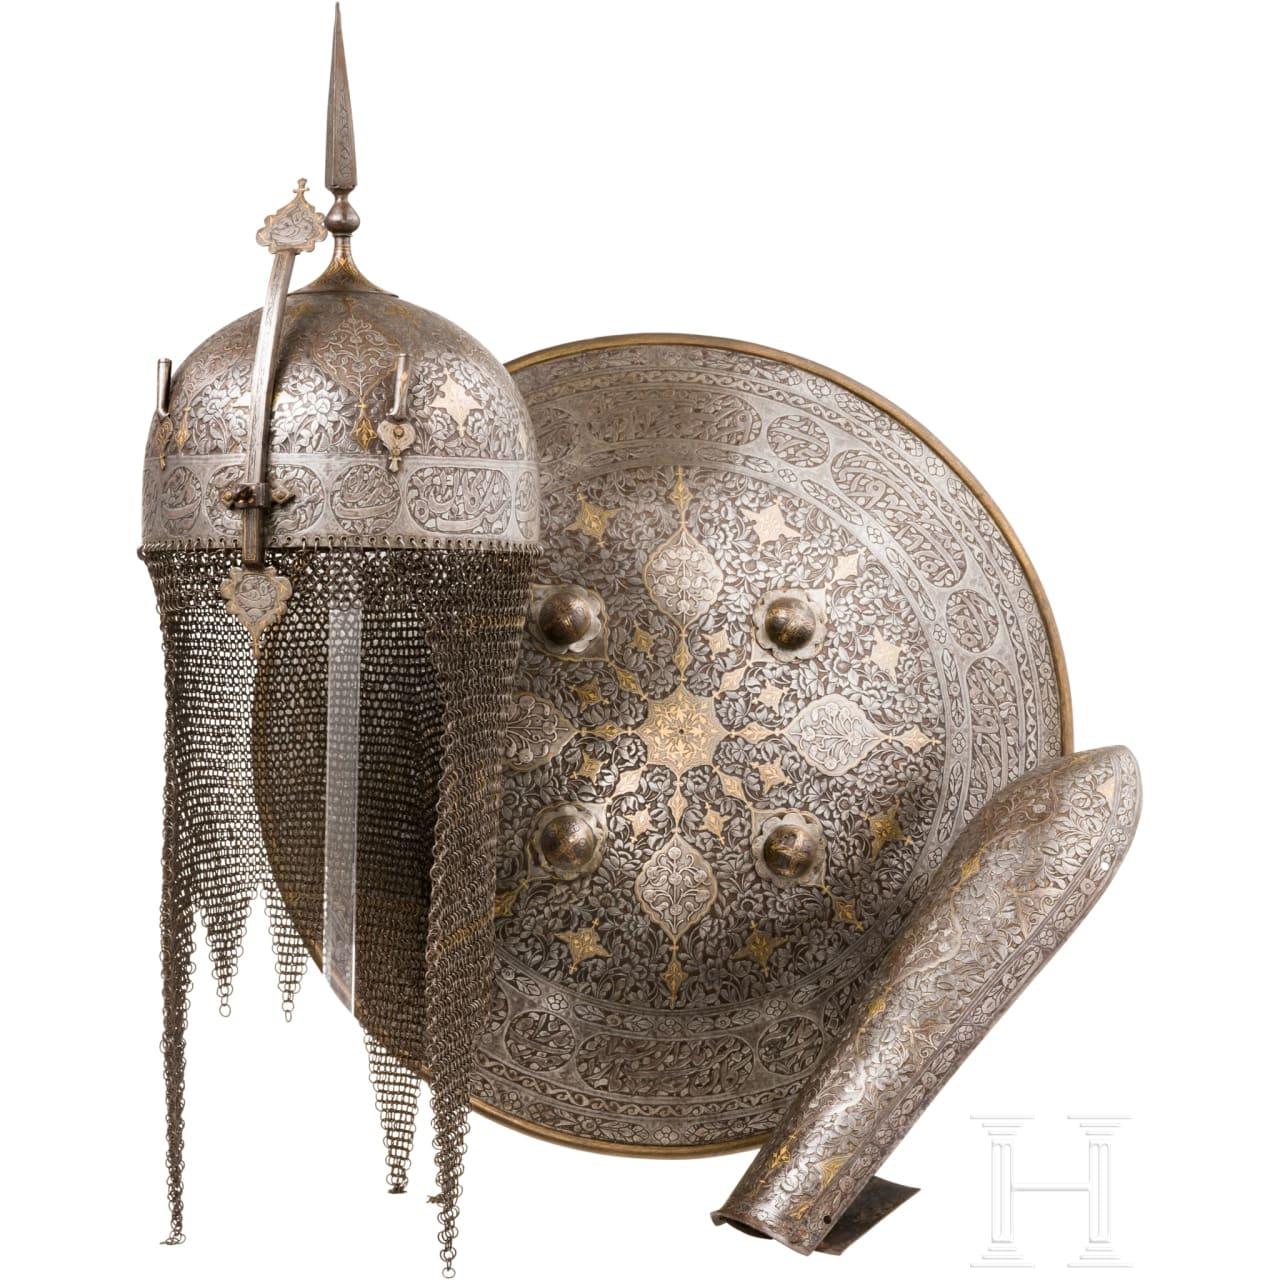 A three-piece set of Persian armour, 1st half of the 19th century